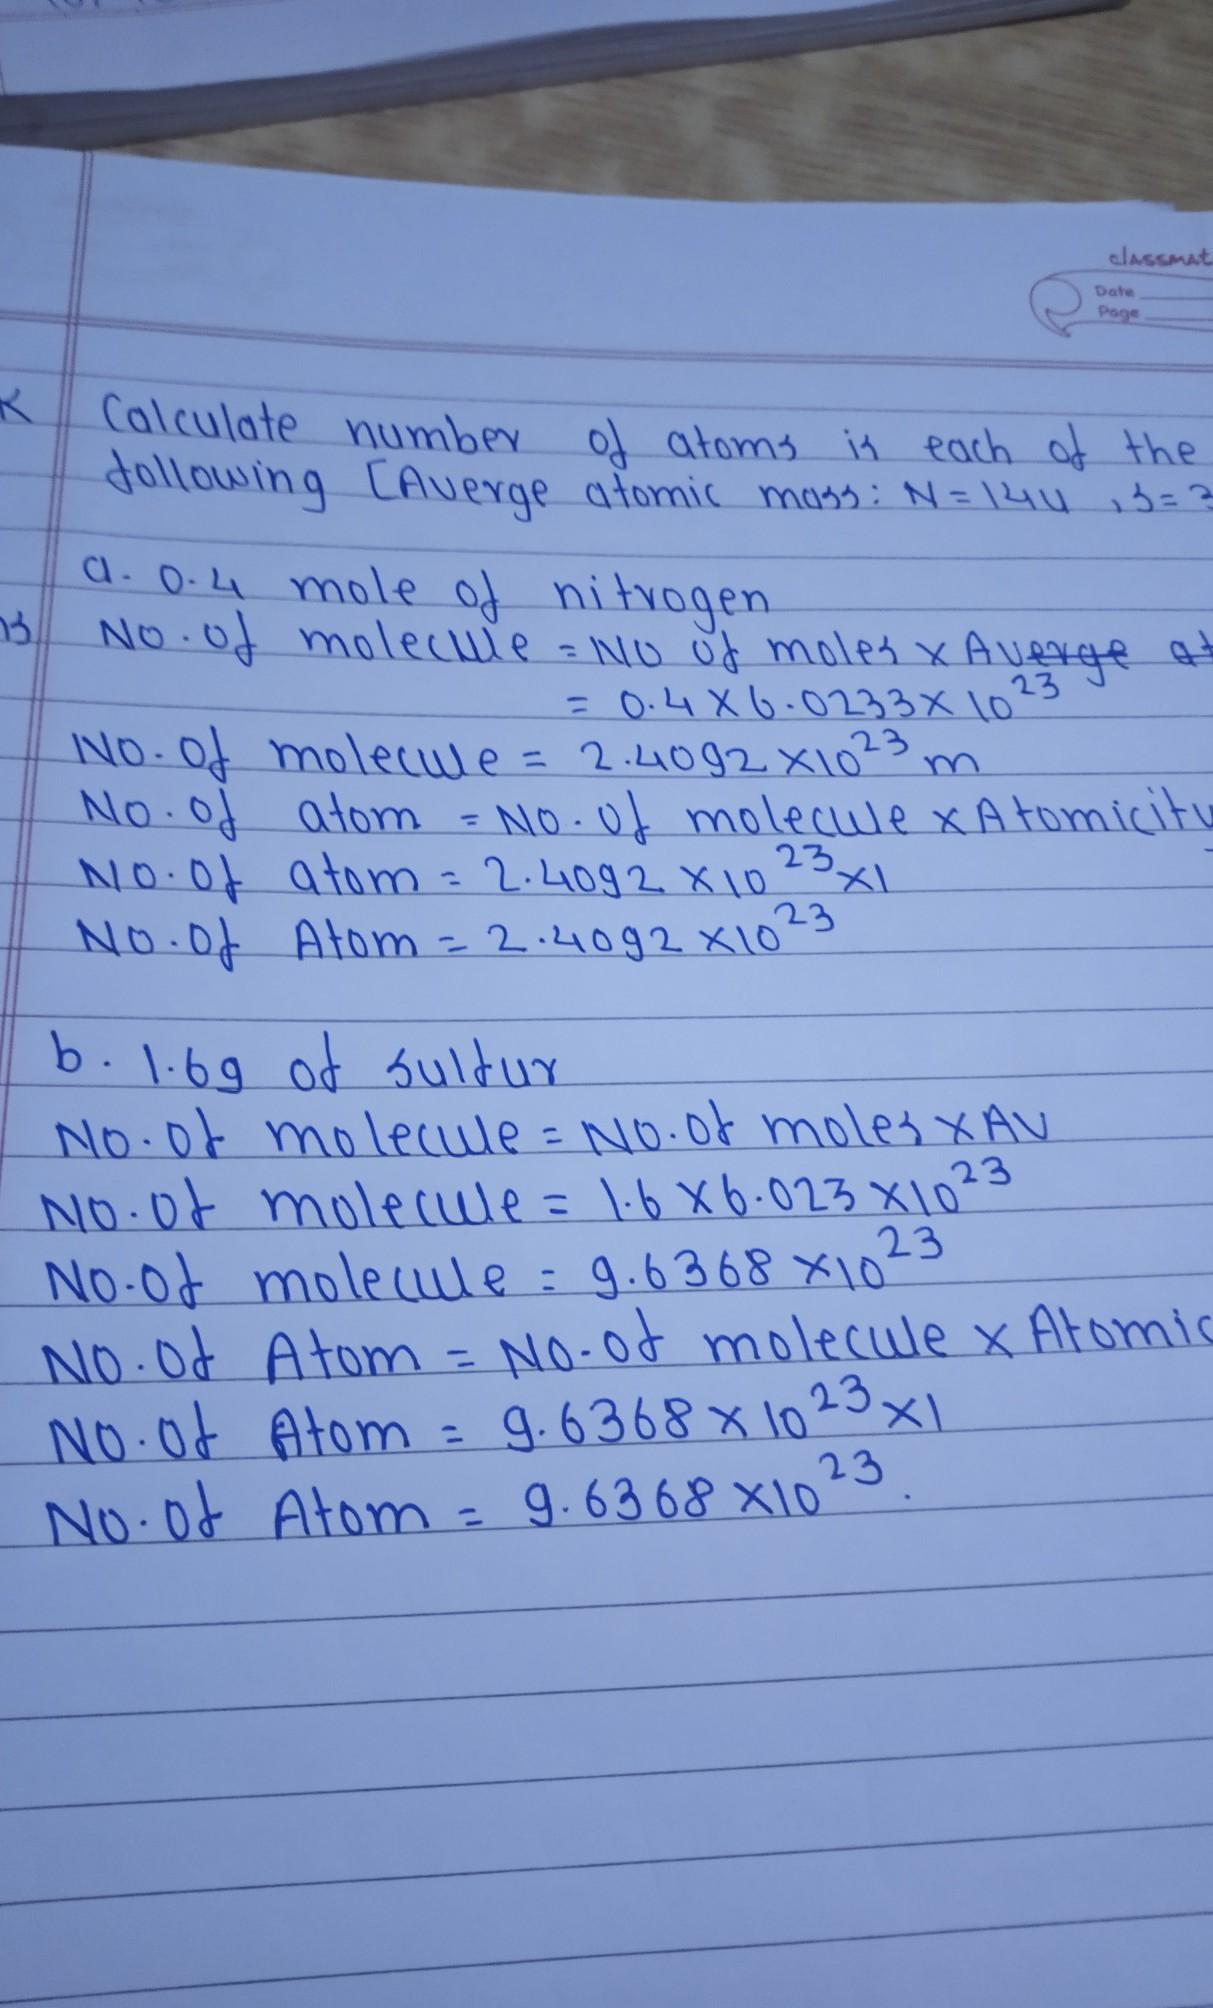 Calculate Number Of Atoms Is Each Of The Following